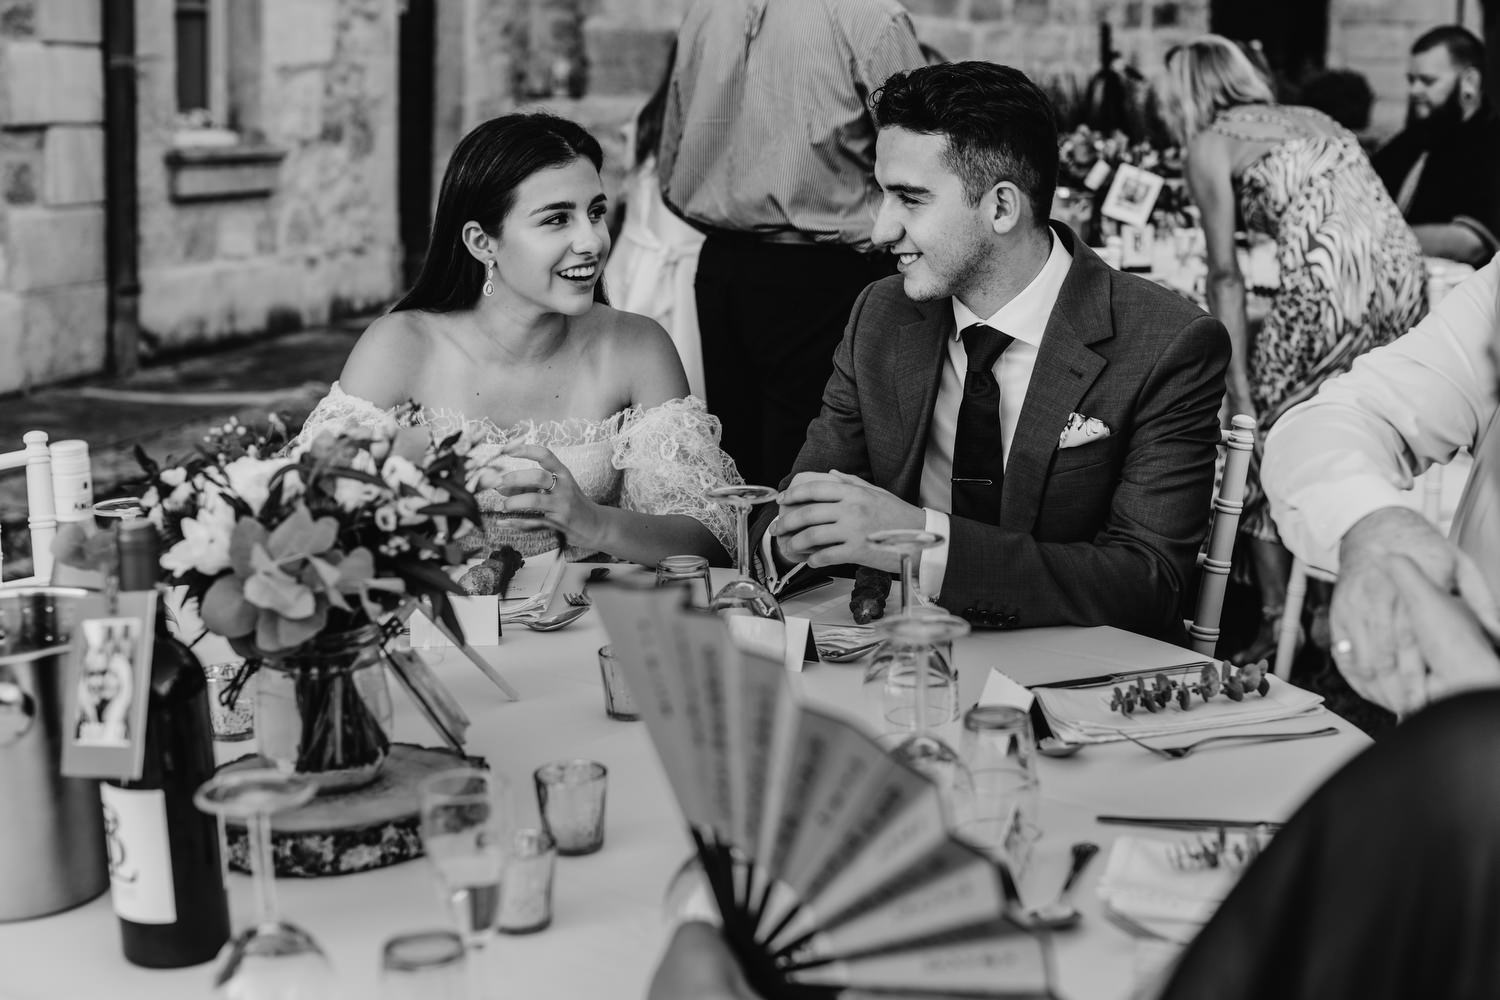 black and white image of wedding guests